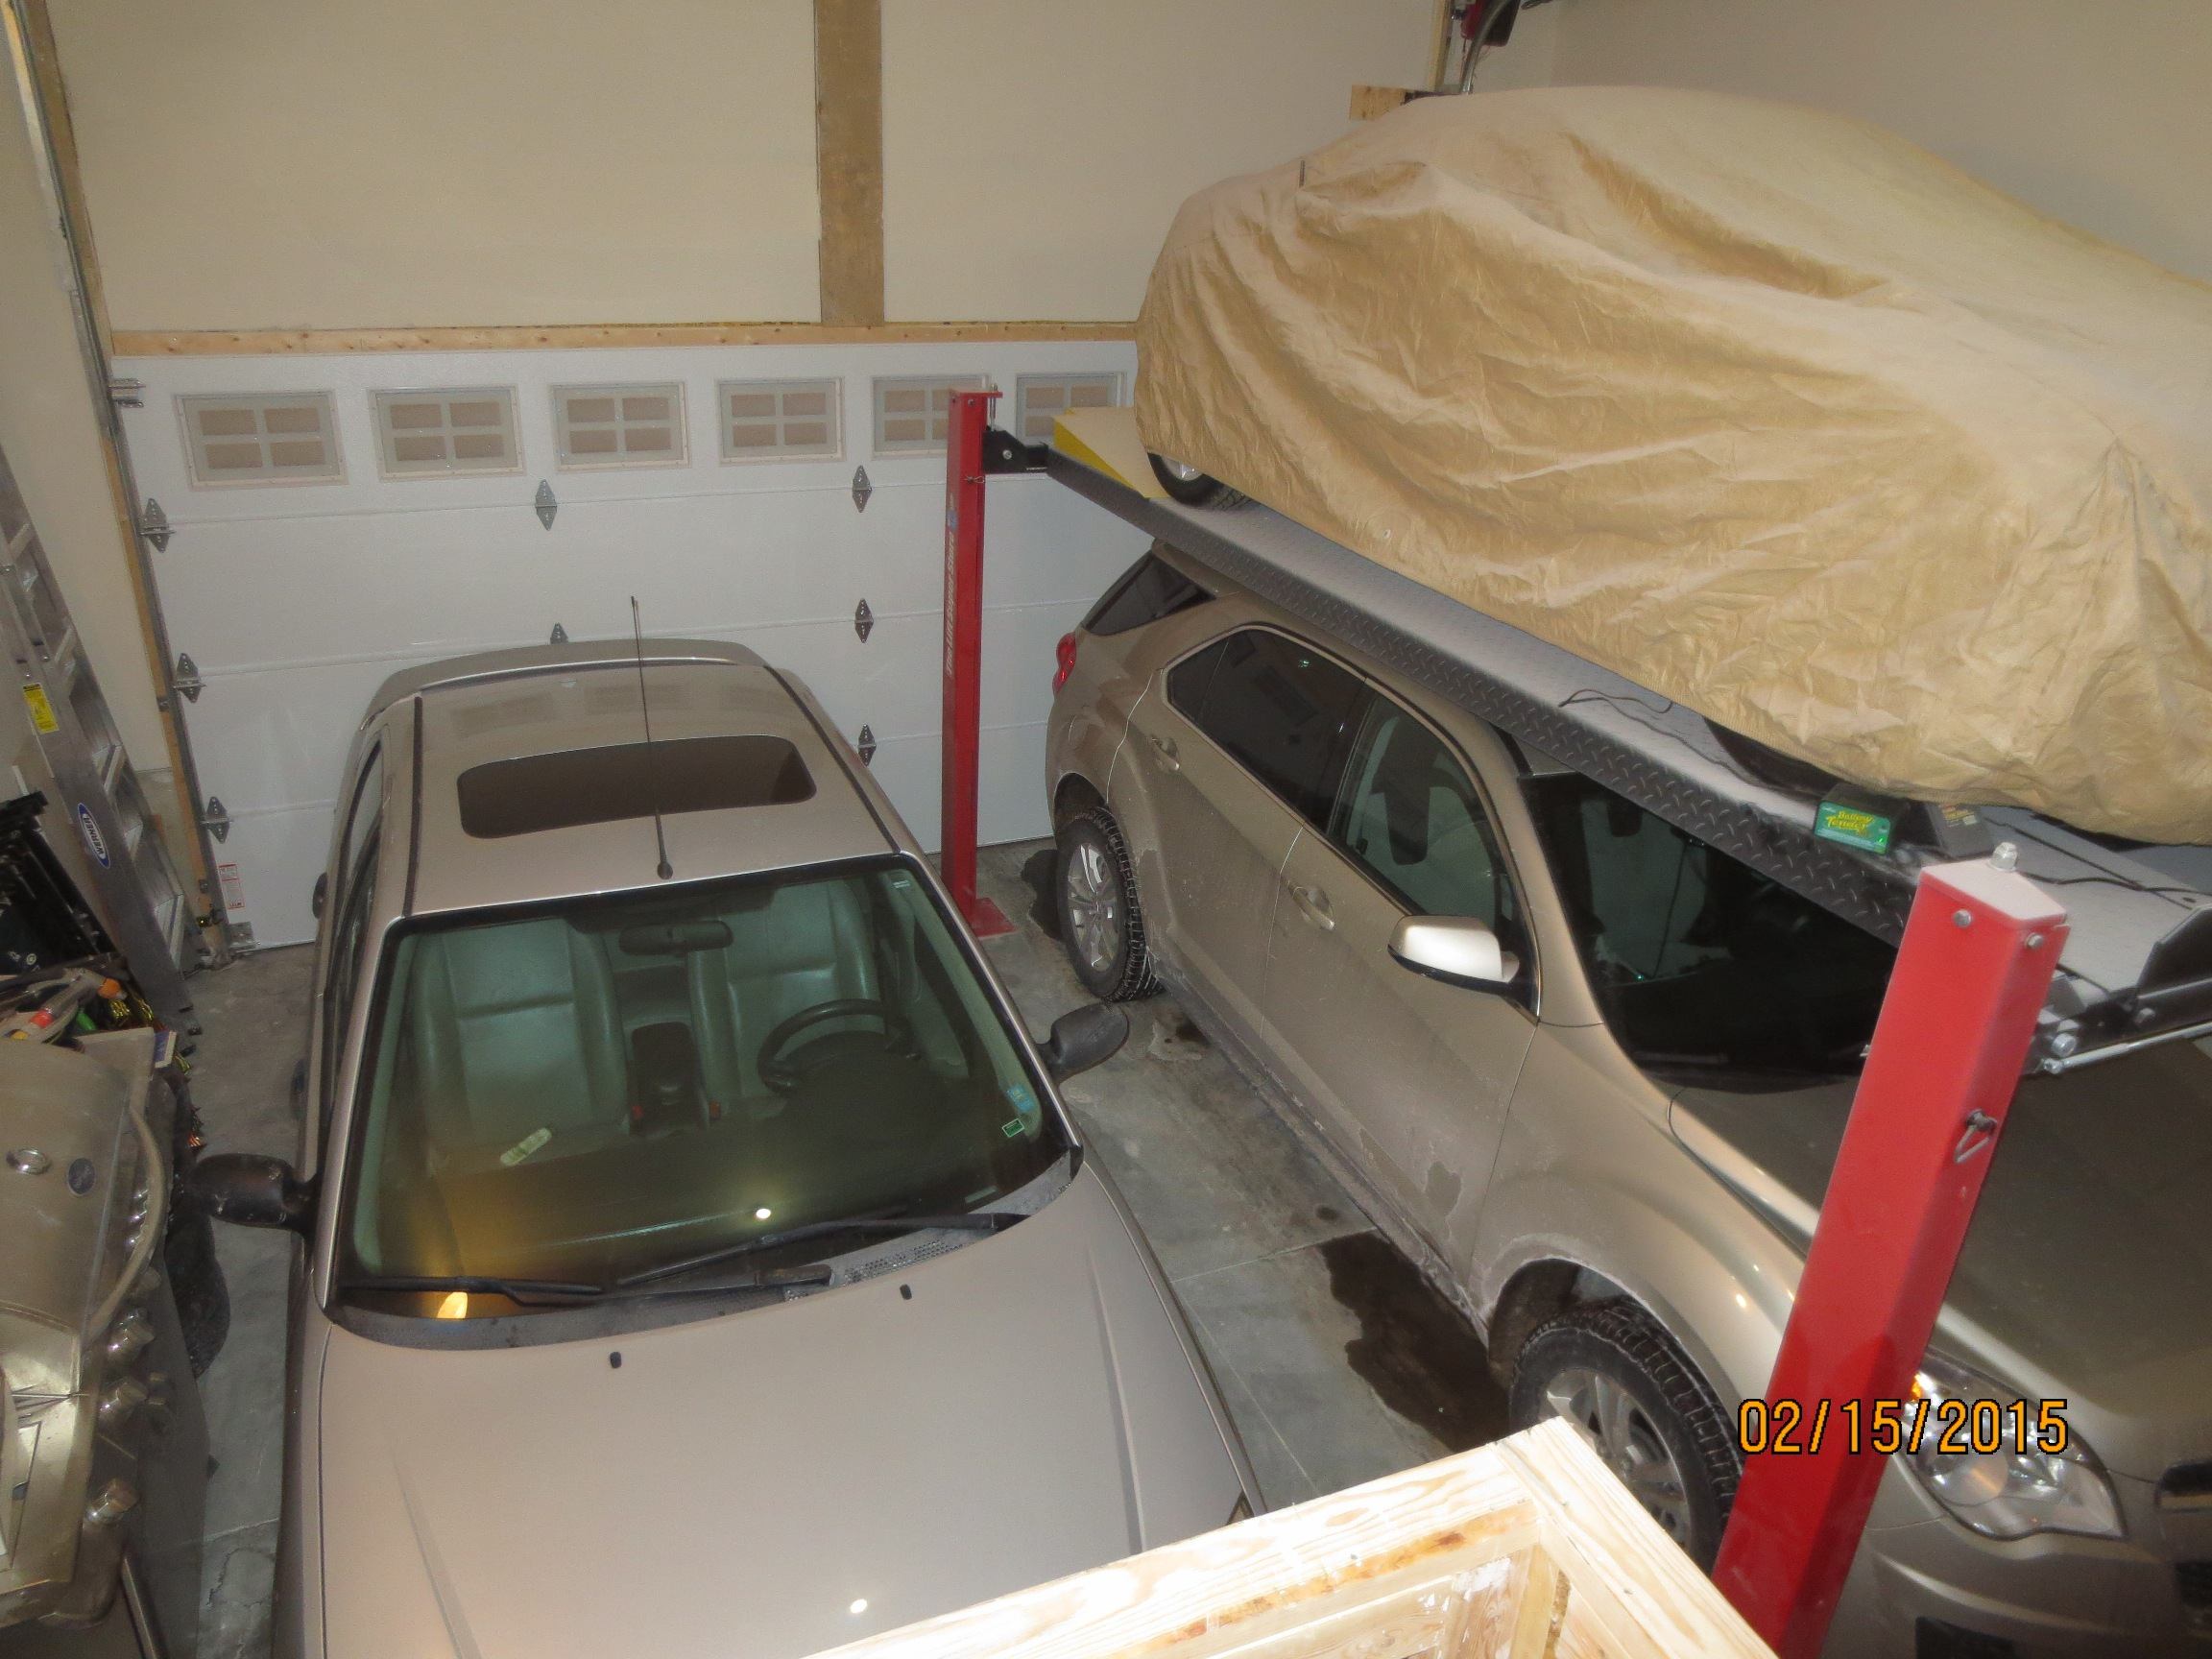 Gallery of Size 2 Car Garage. Size 2 Car Garage   Exotic Car Enthusiasts Auto Lifts Jack Shafts